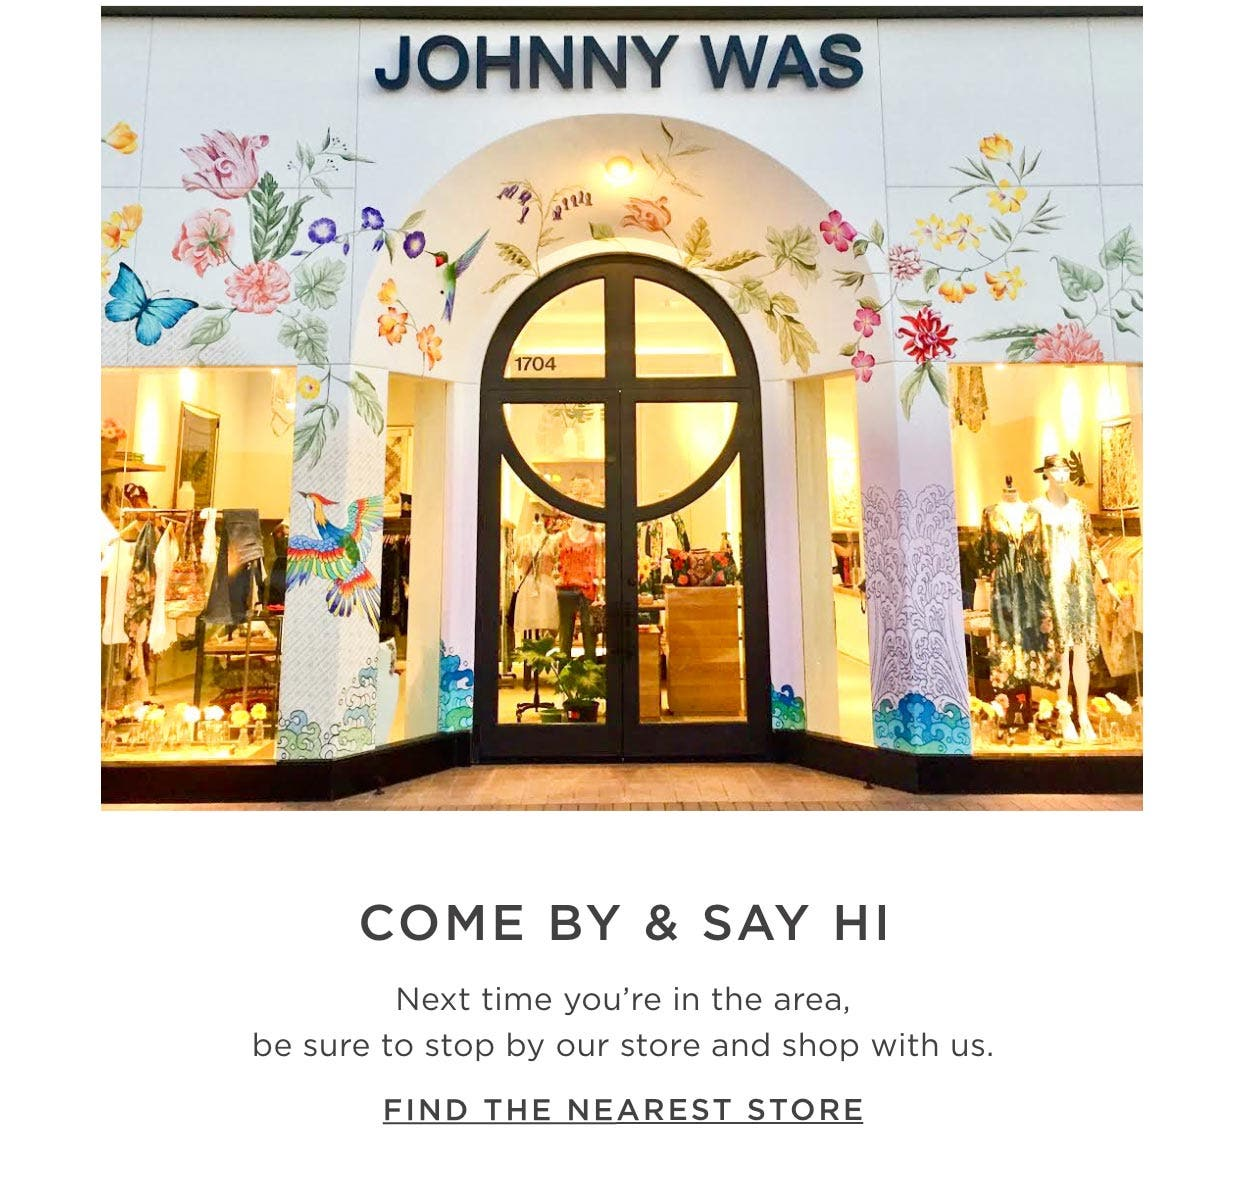 Come by & Say Hi - Next time you're in the area, come on in and shop with us. Find the Nearest Store.